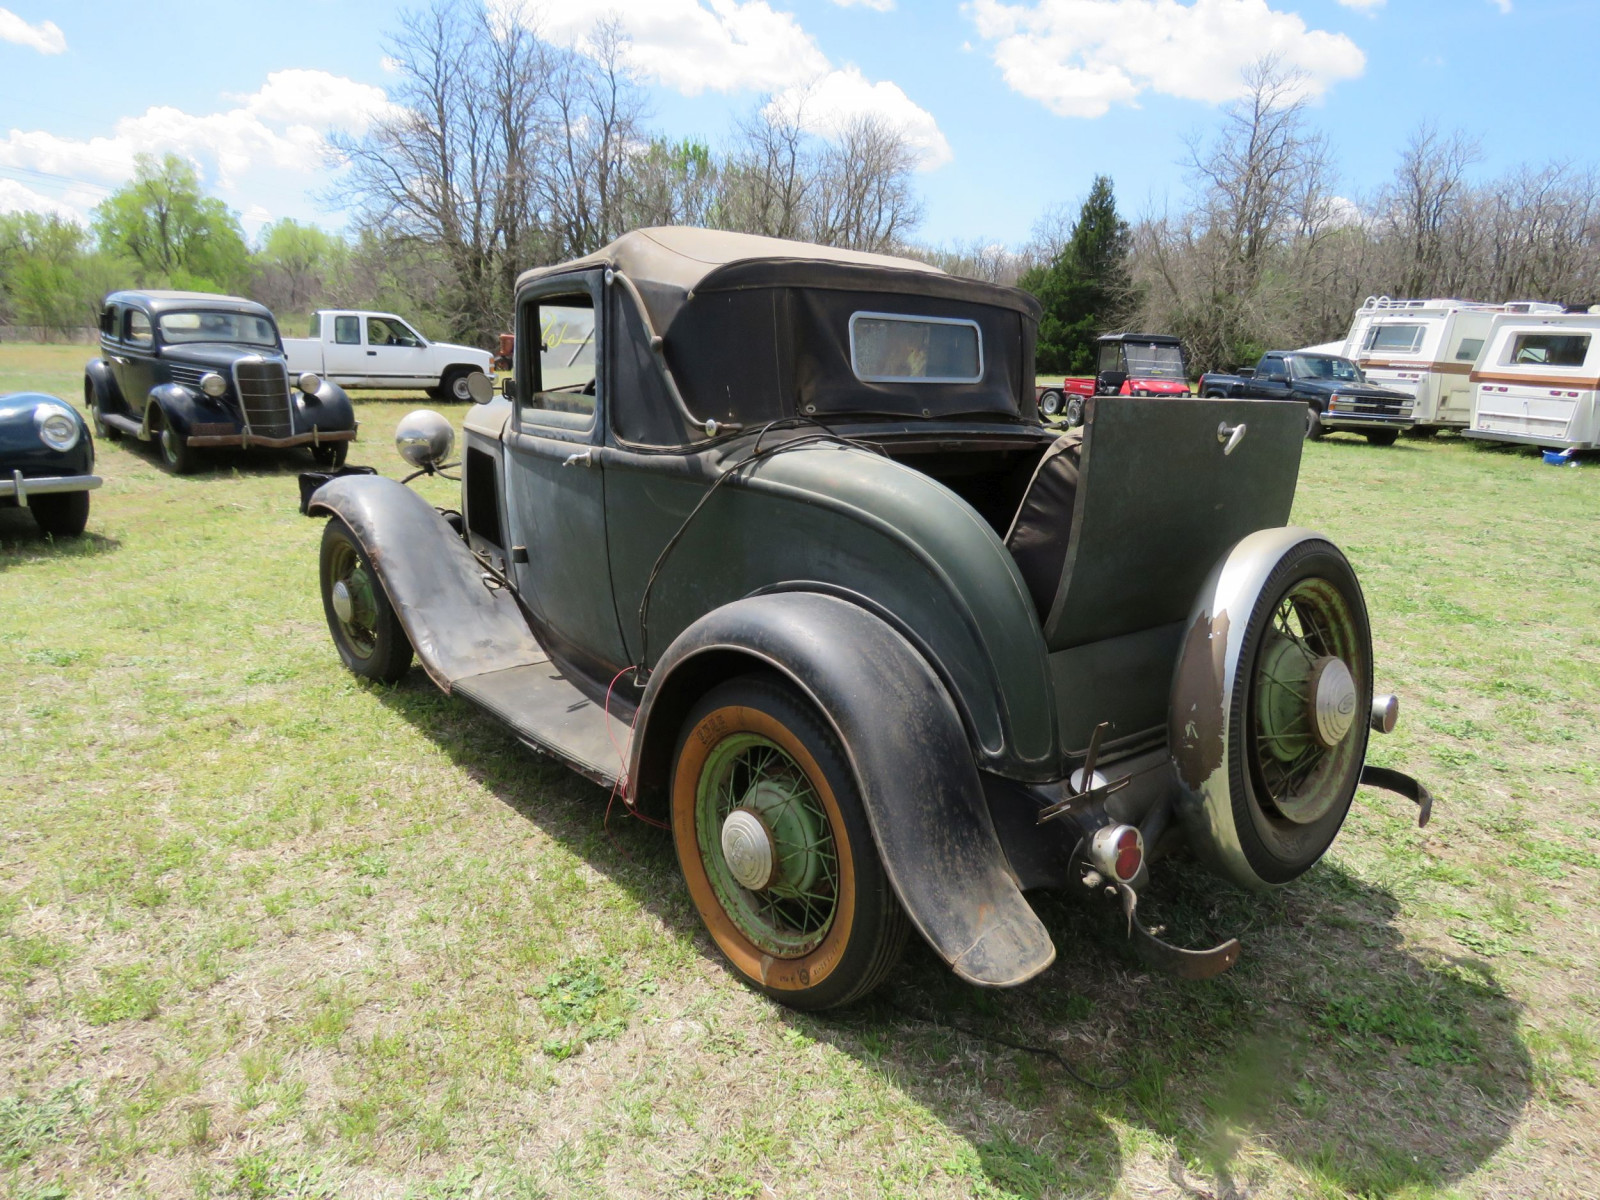 1932 FORD SPORT COUPE ORIGINAL PROJECT - Image 8